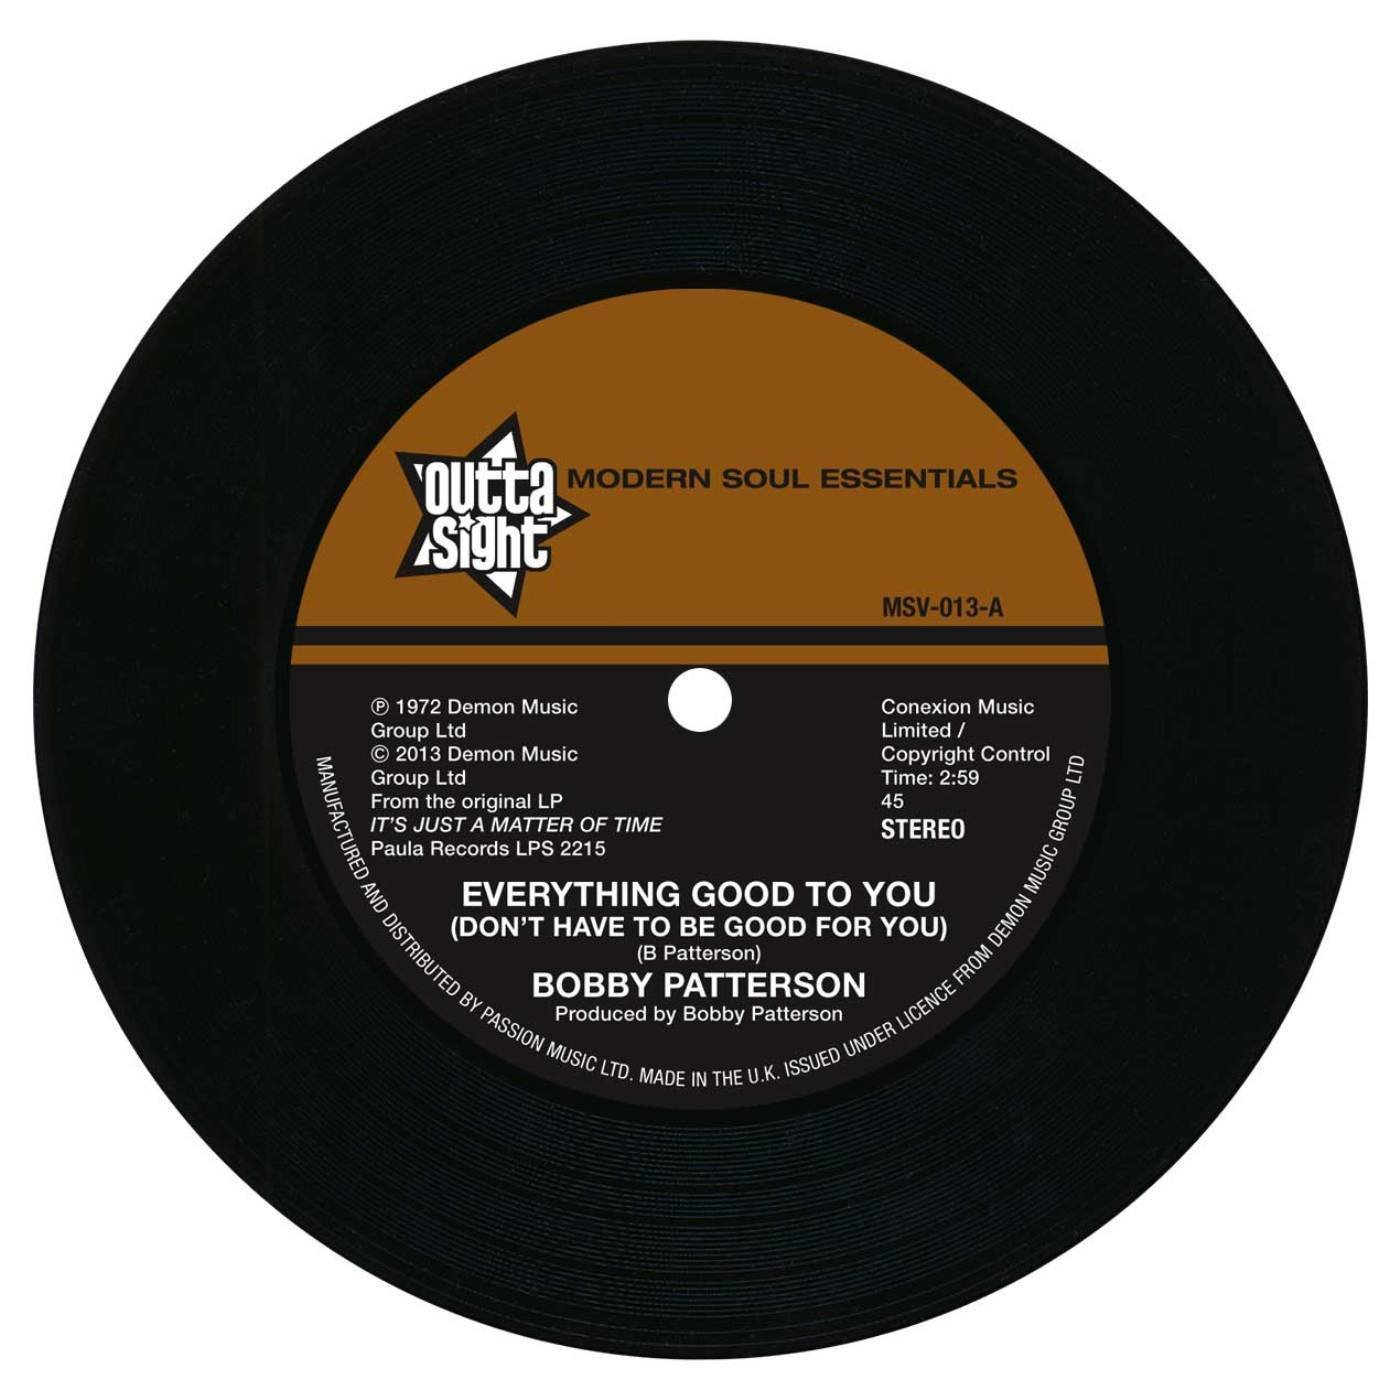 Bobby Patterson – Everything Good To You / I Get My Groove From You 45 (Outta Sight) 7″ Vinyl